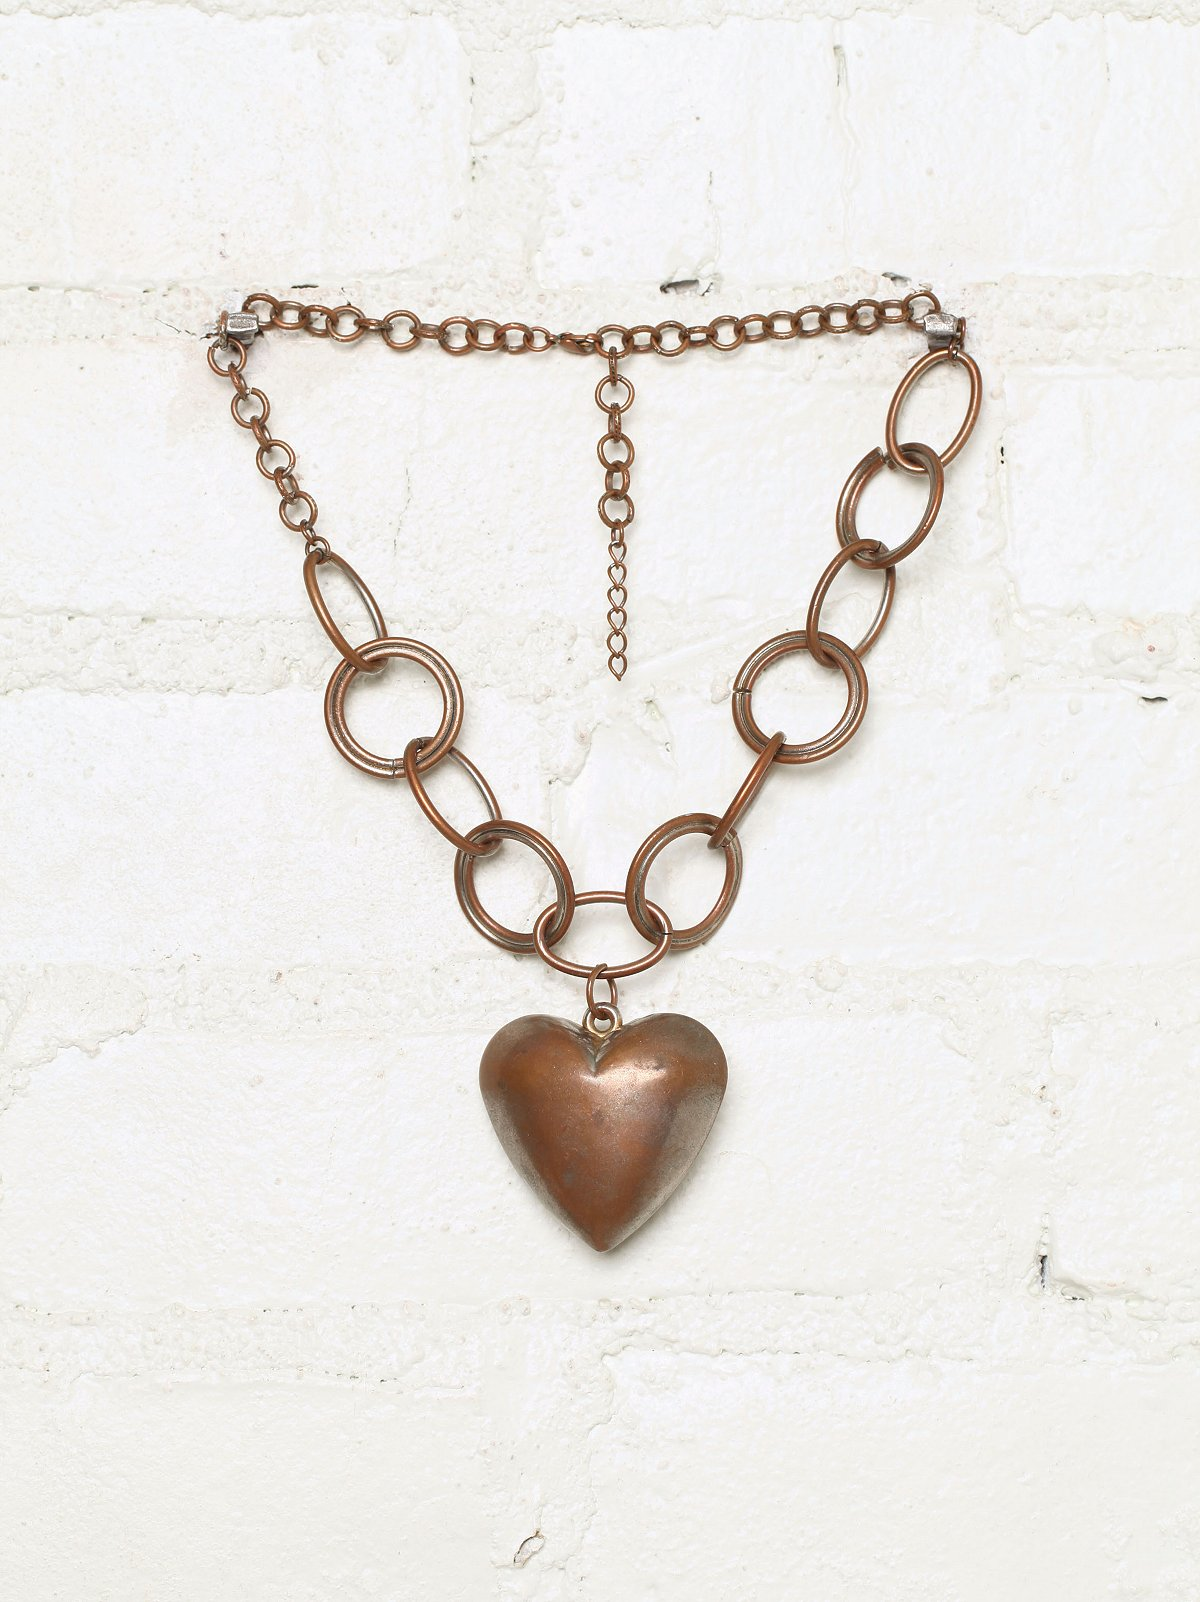 Vintage Heart Pendant Chainlink Necklace